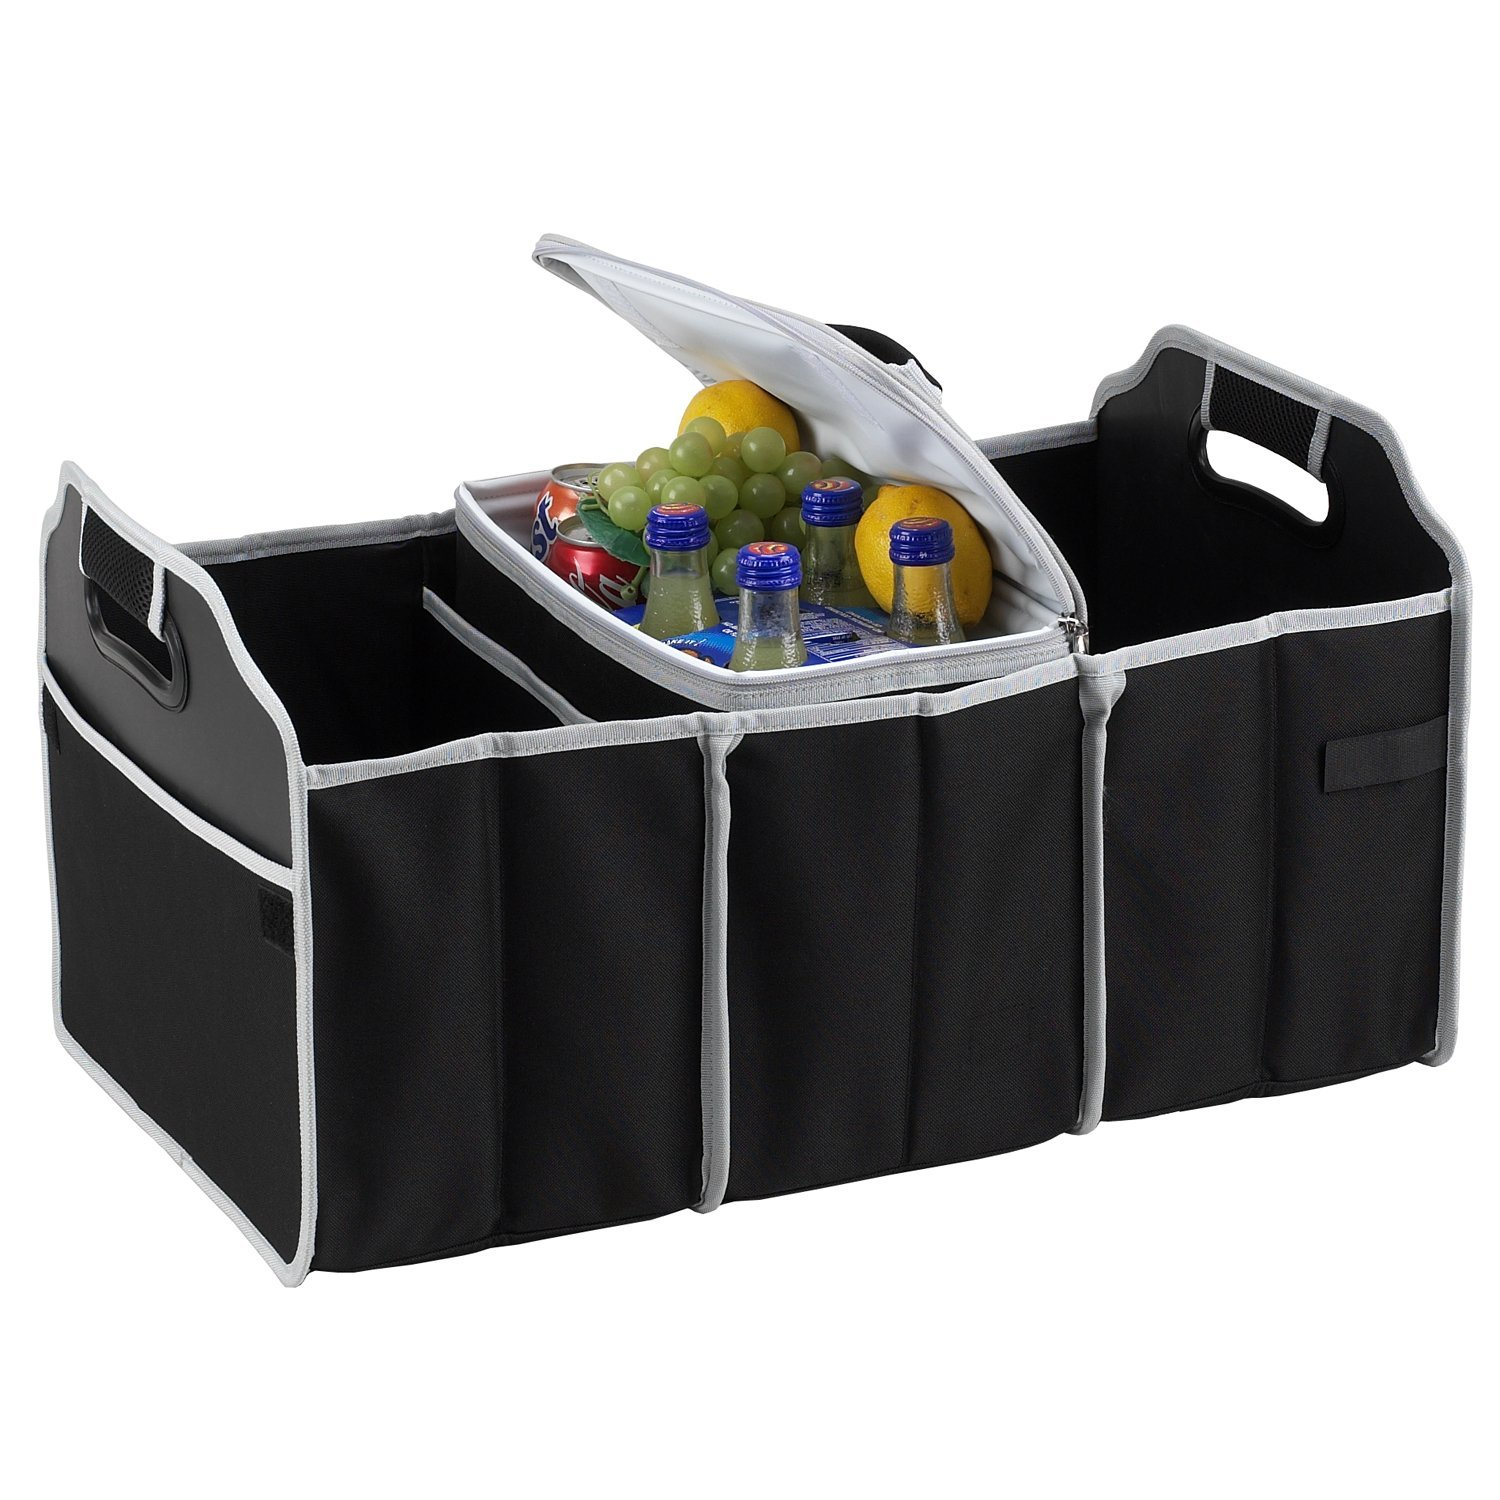 Picnic at Ascot Trunk Organizer and Cooler set -Black 8014-BLK